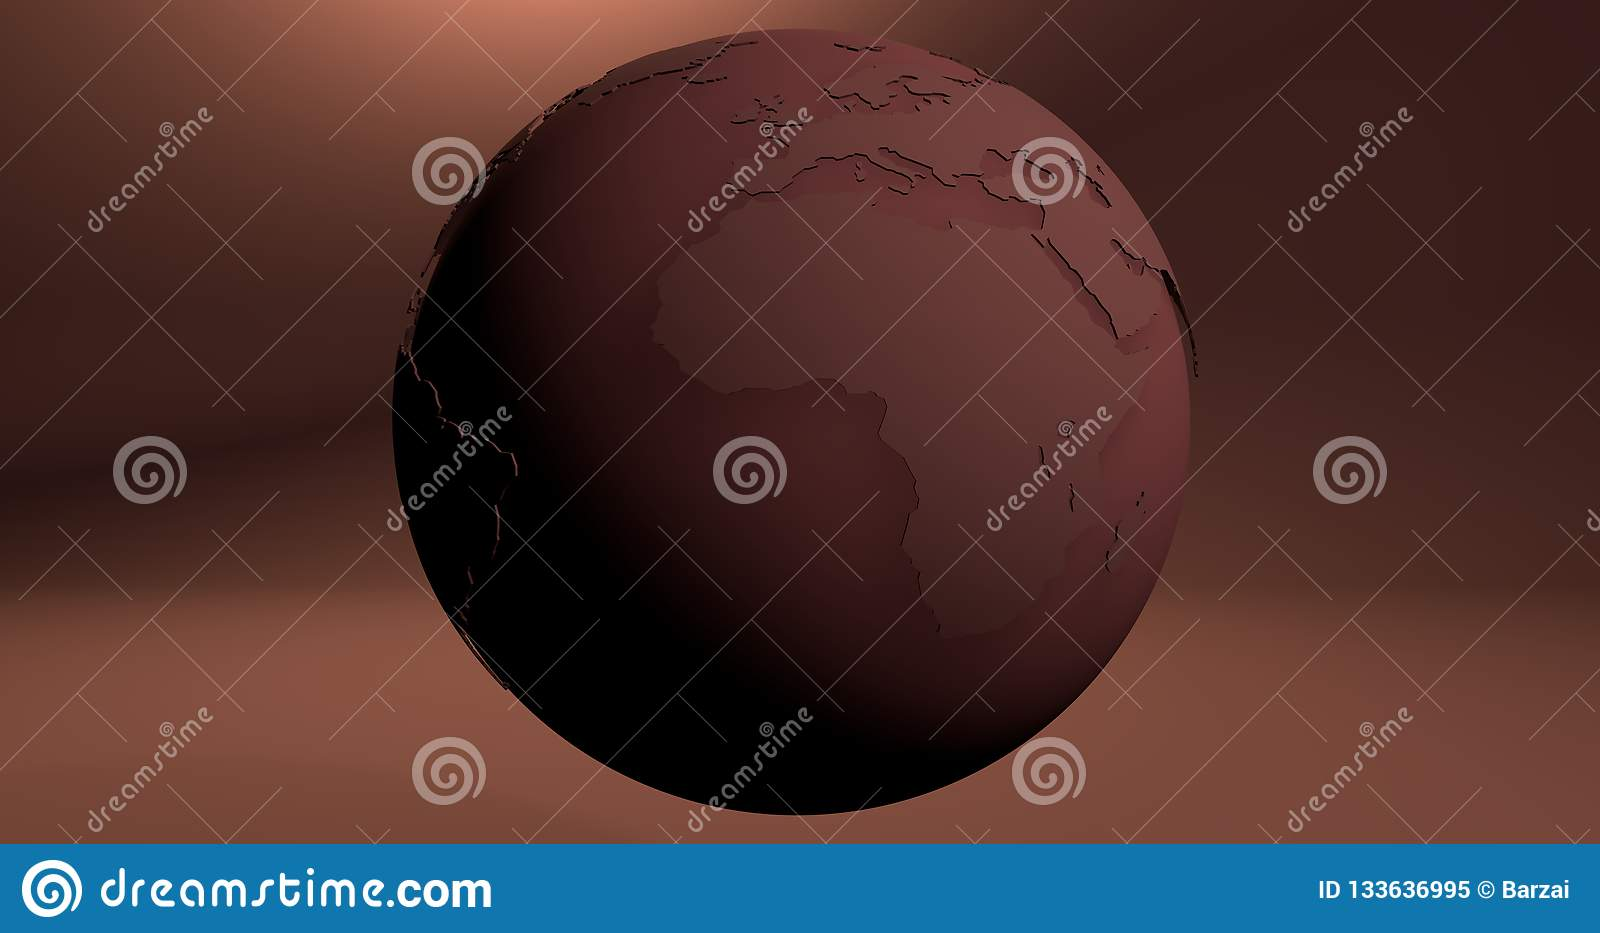 A background with the Earth planet in crimson color, which shows the Africa continent.